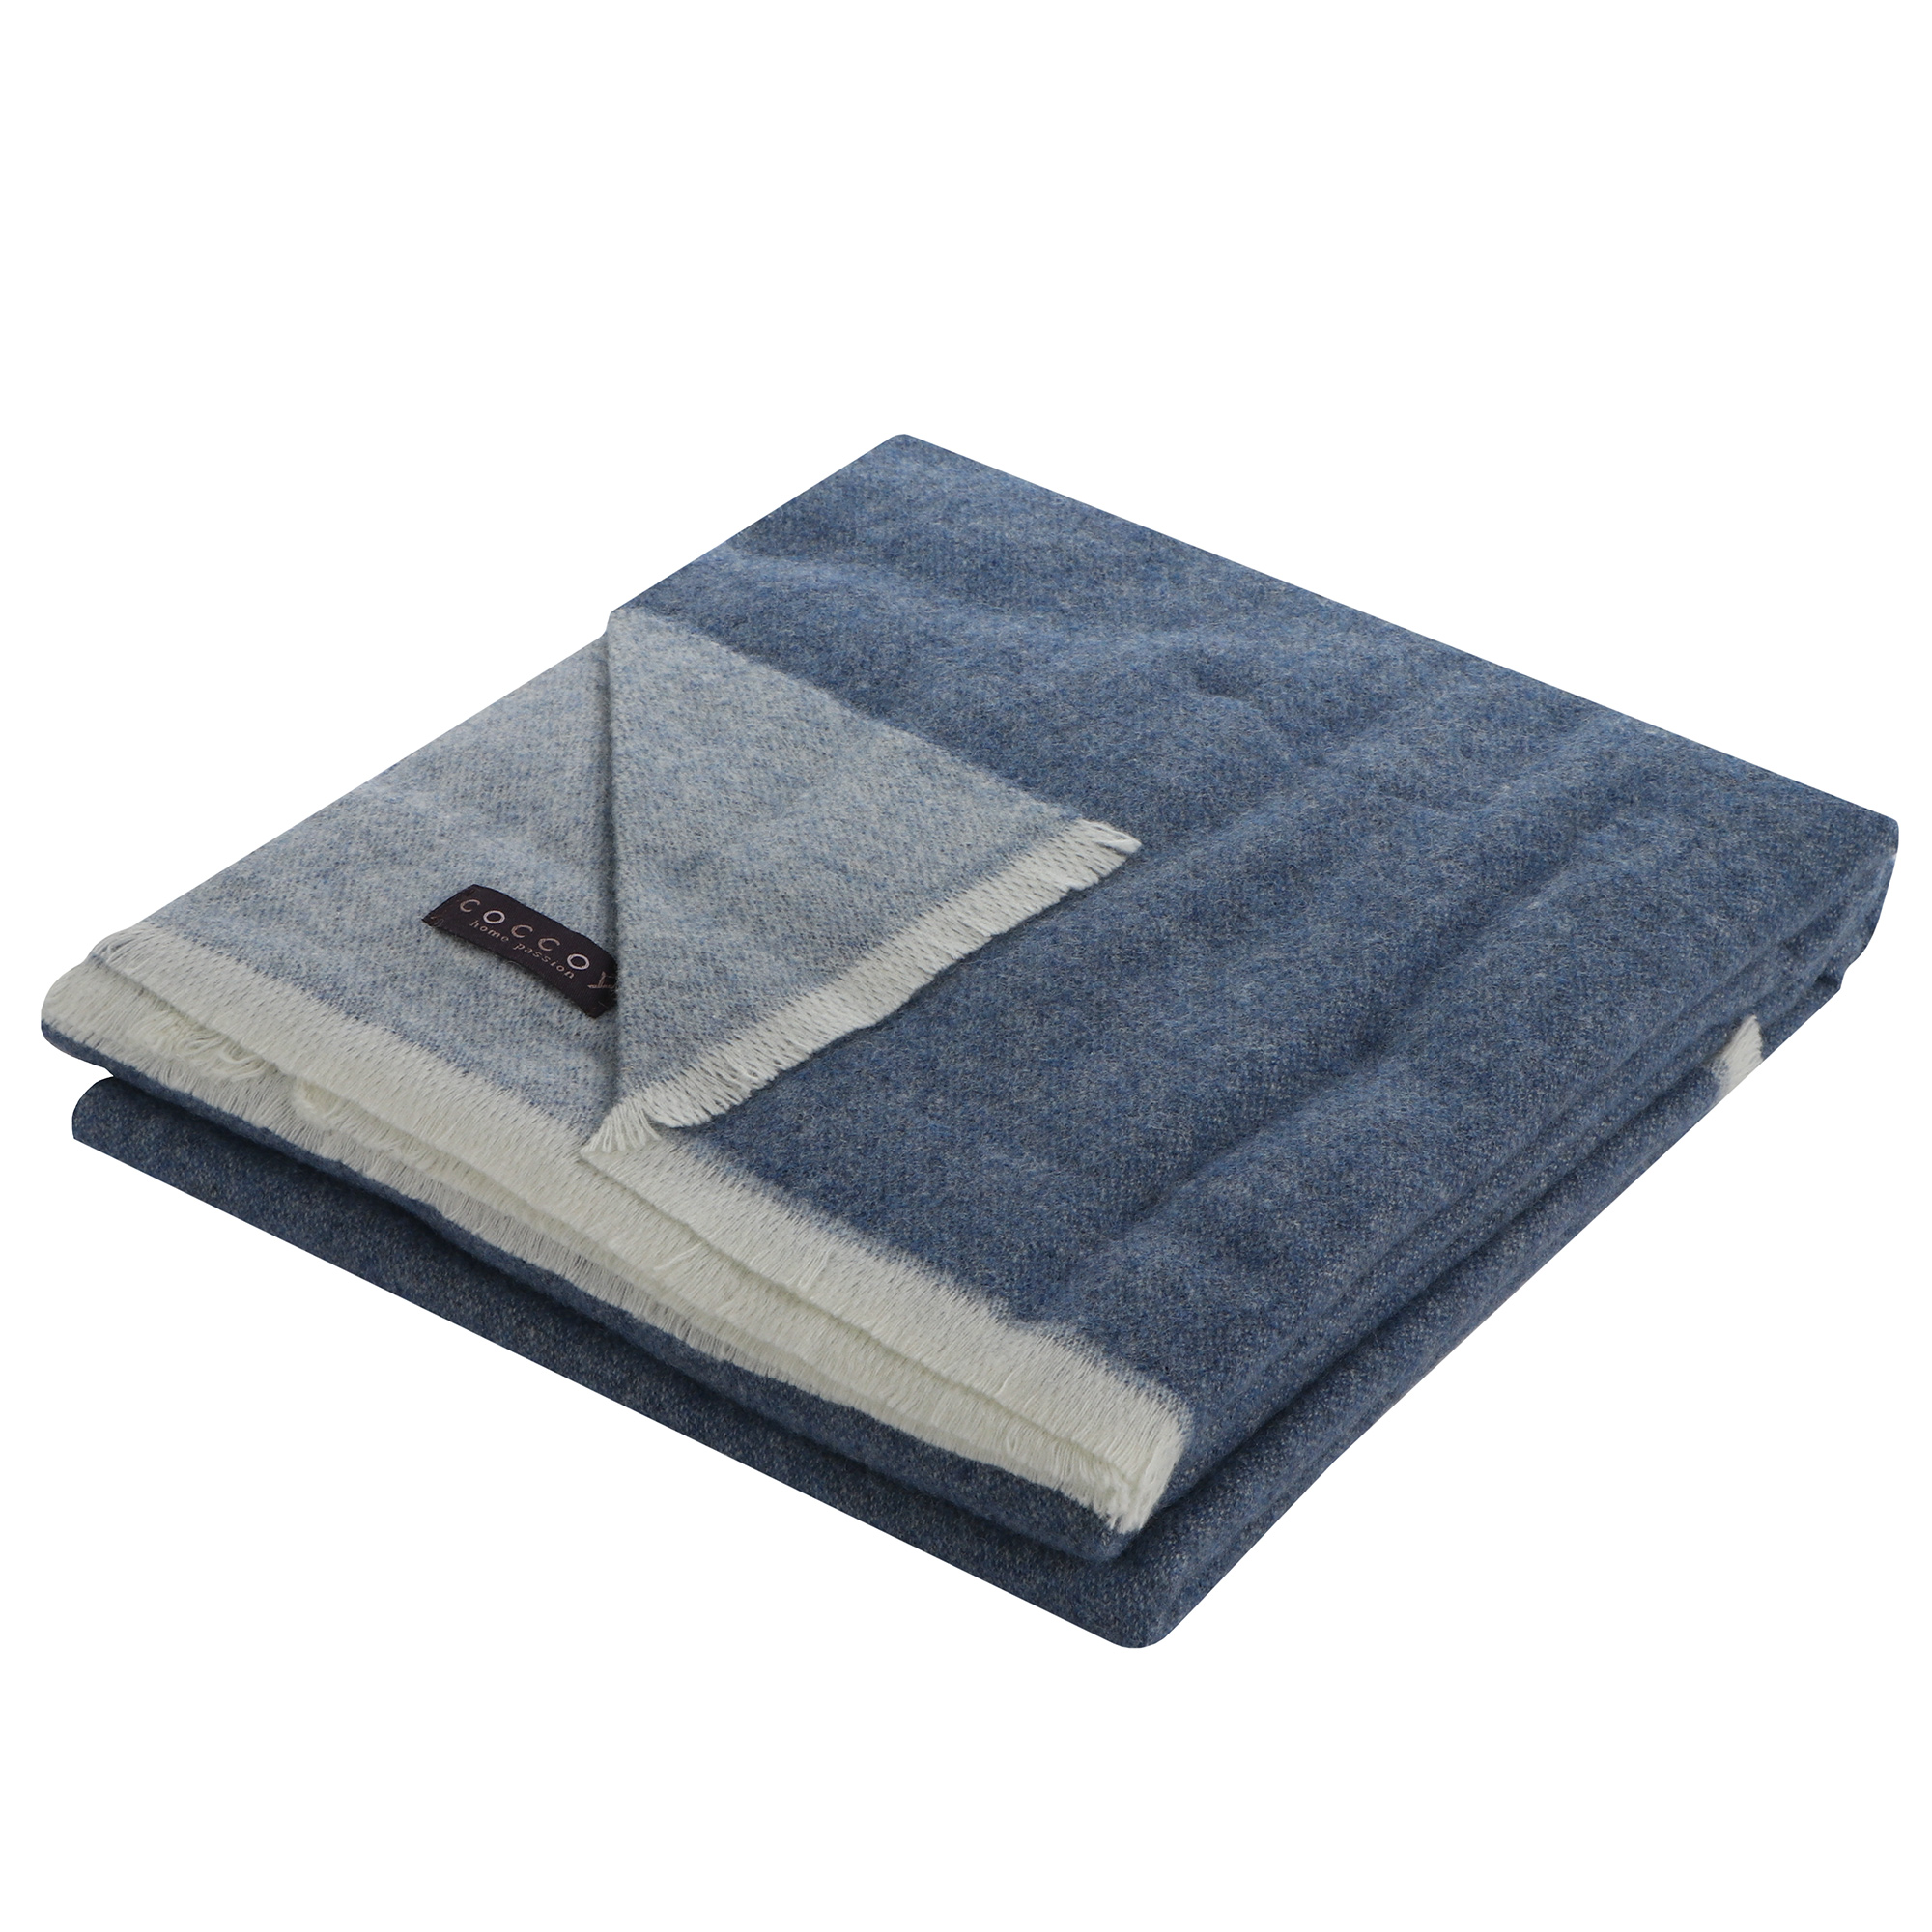 Плед Areain / fashion bed woolly 130x180 синий